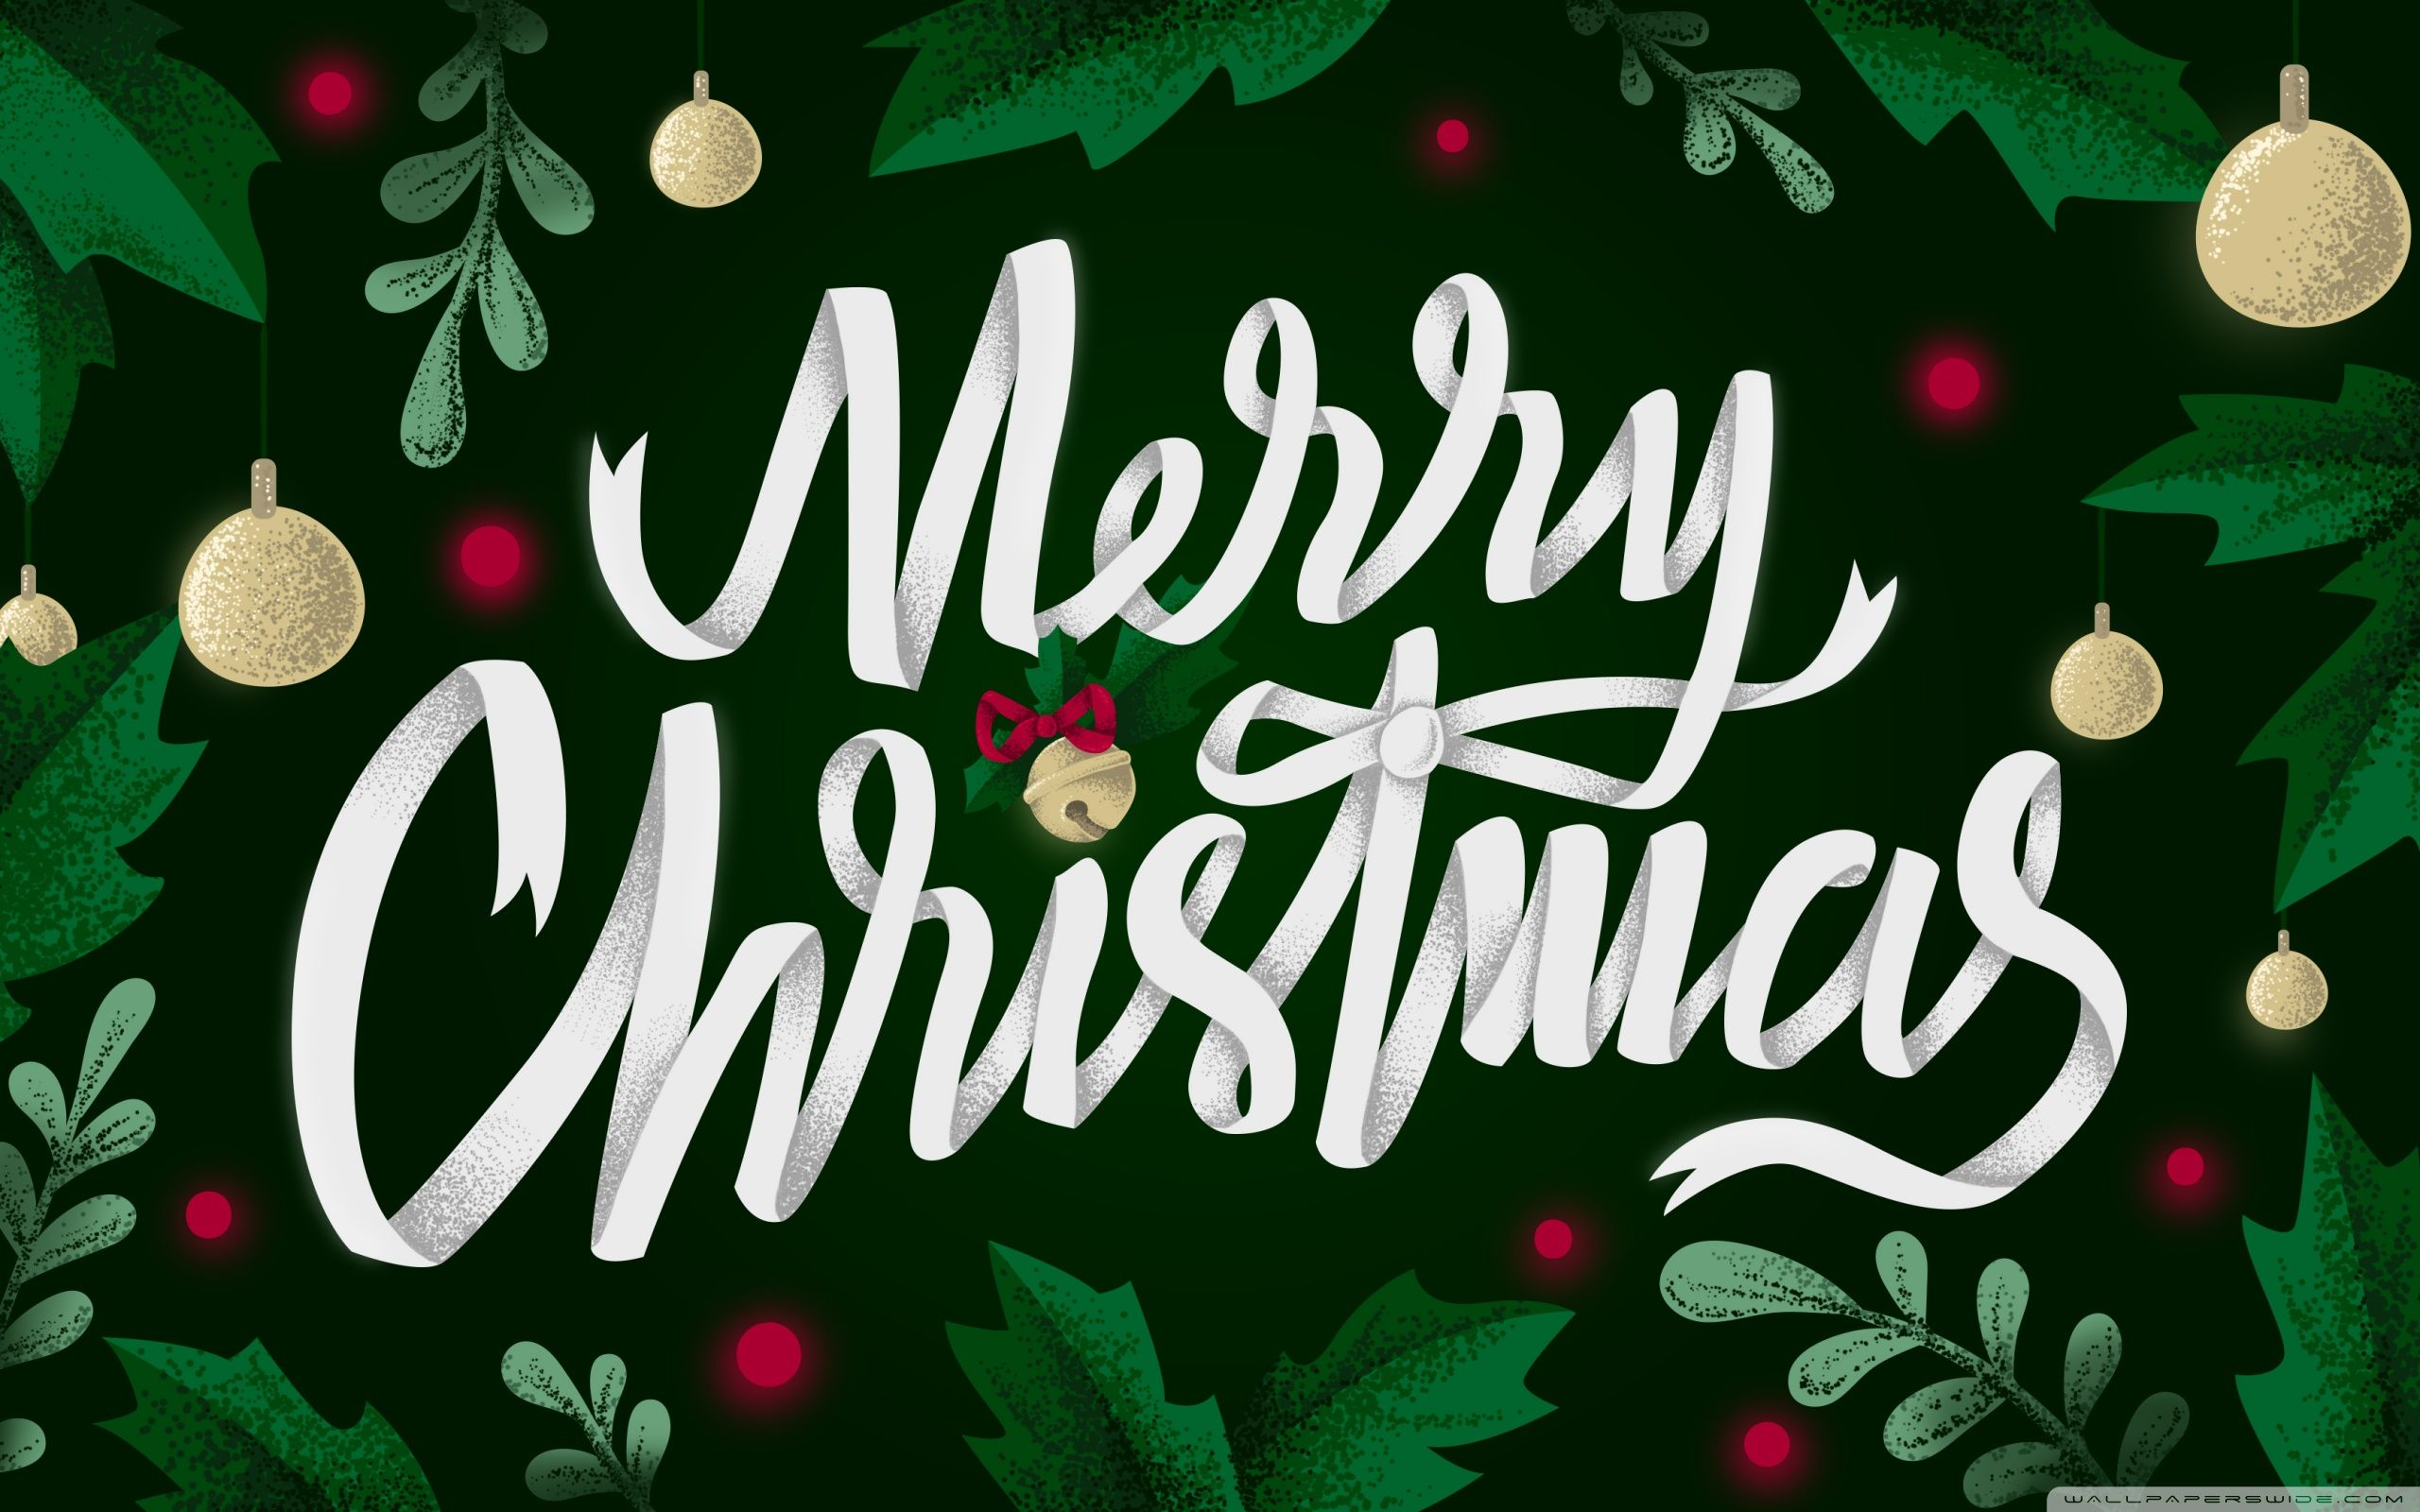 Merry Christmas 2021 Wallpapers - Wallpaper Cave